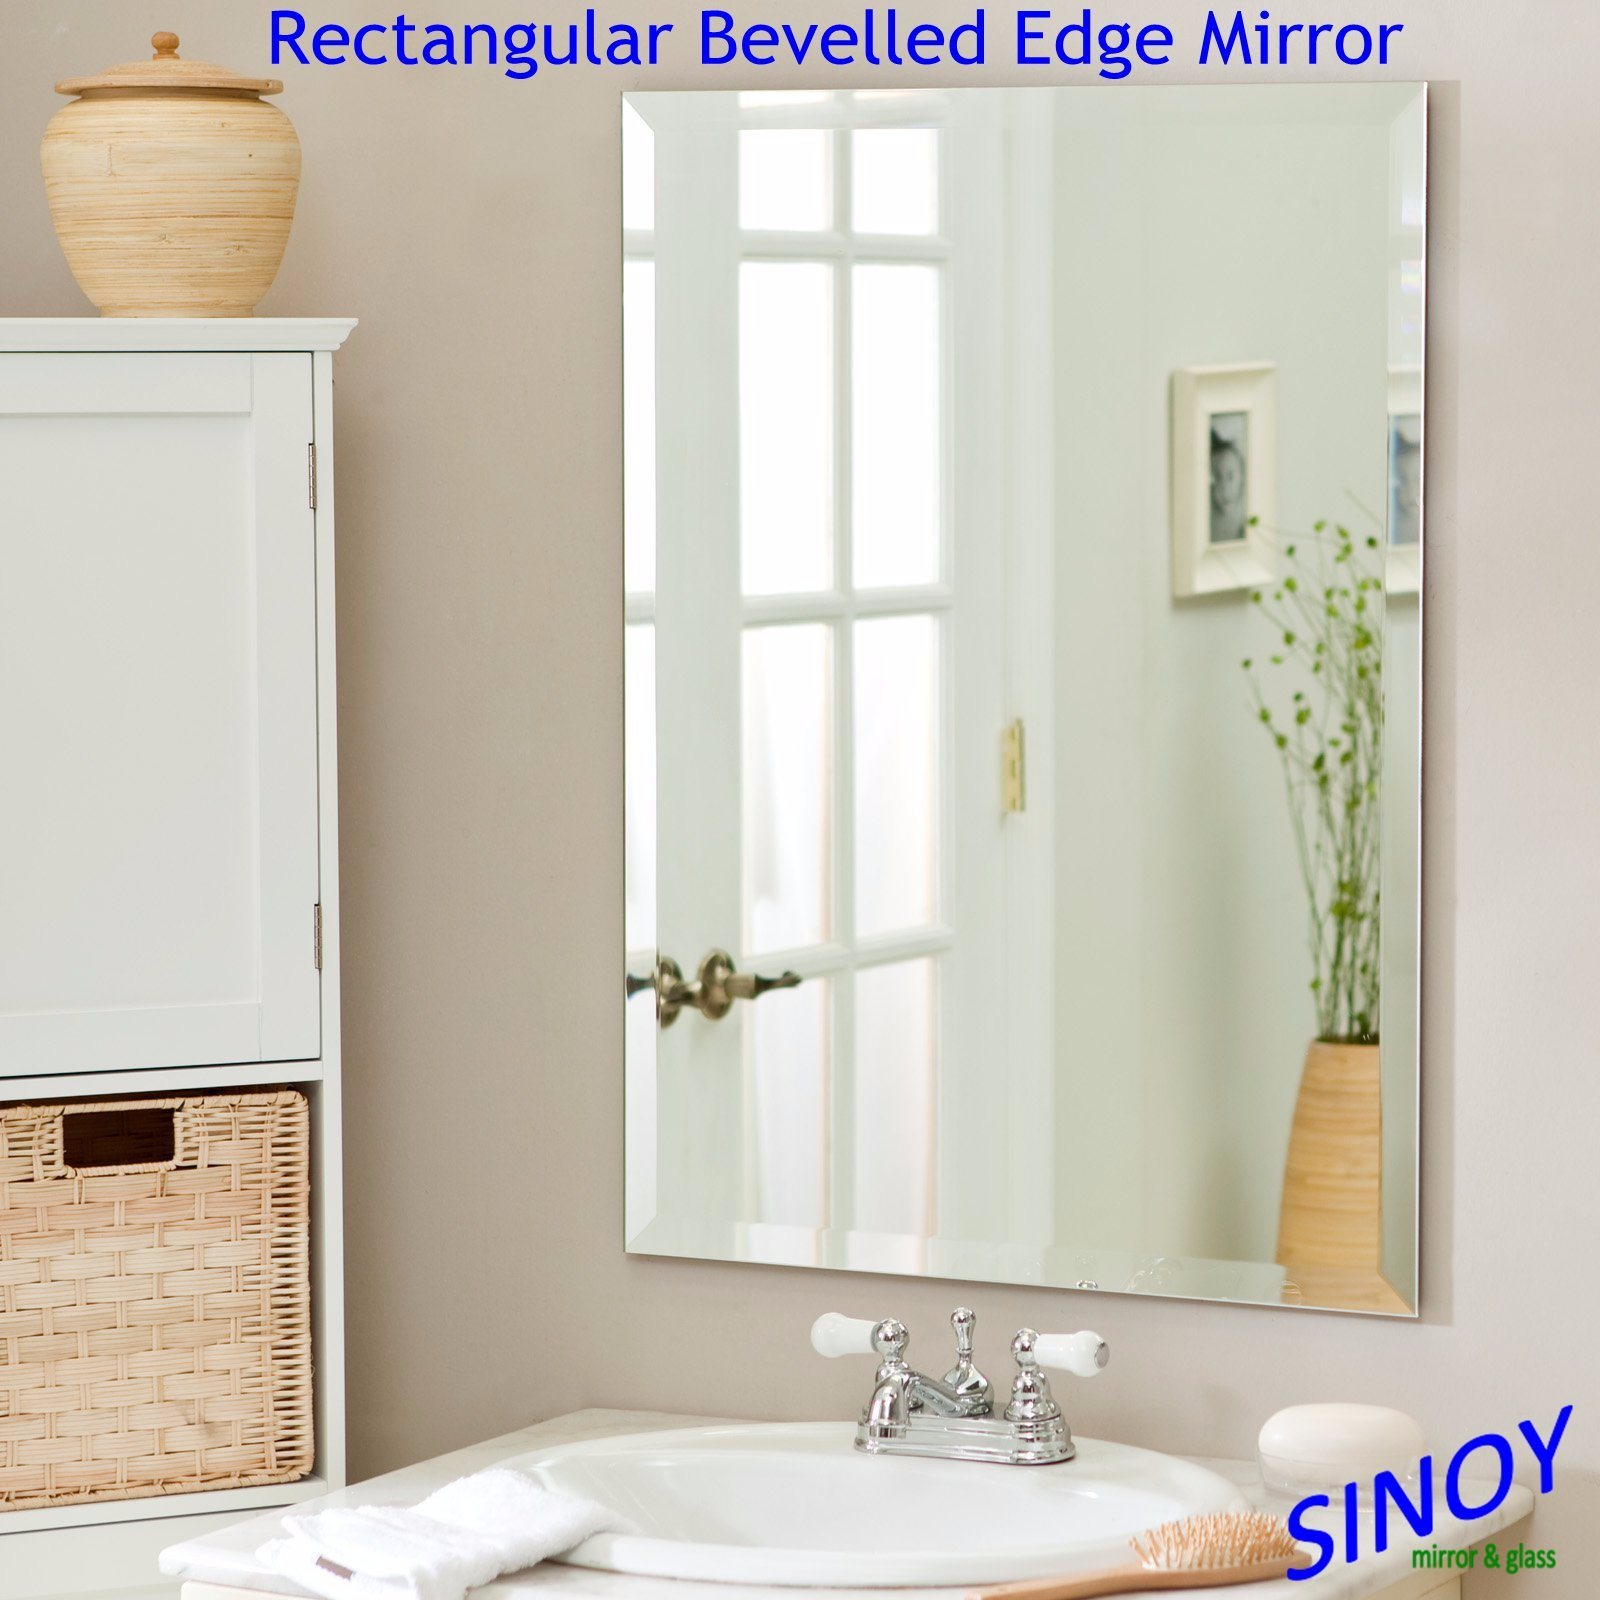 China Waterproof Frameless Bathroom Mirror Made Of Polished Edge Silver Mirror Glass Can Be In Square Round Oval Or Irregular Shapes China Bathroom Mirror Silver Mirror Glass